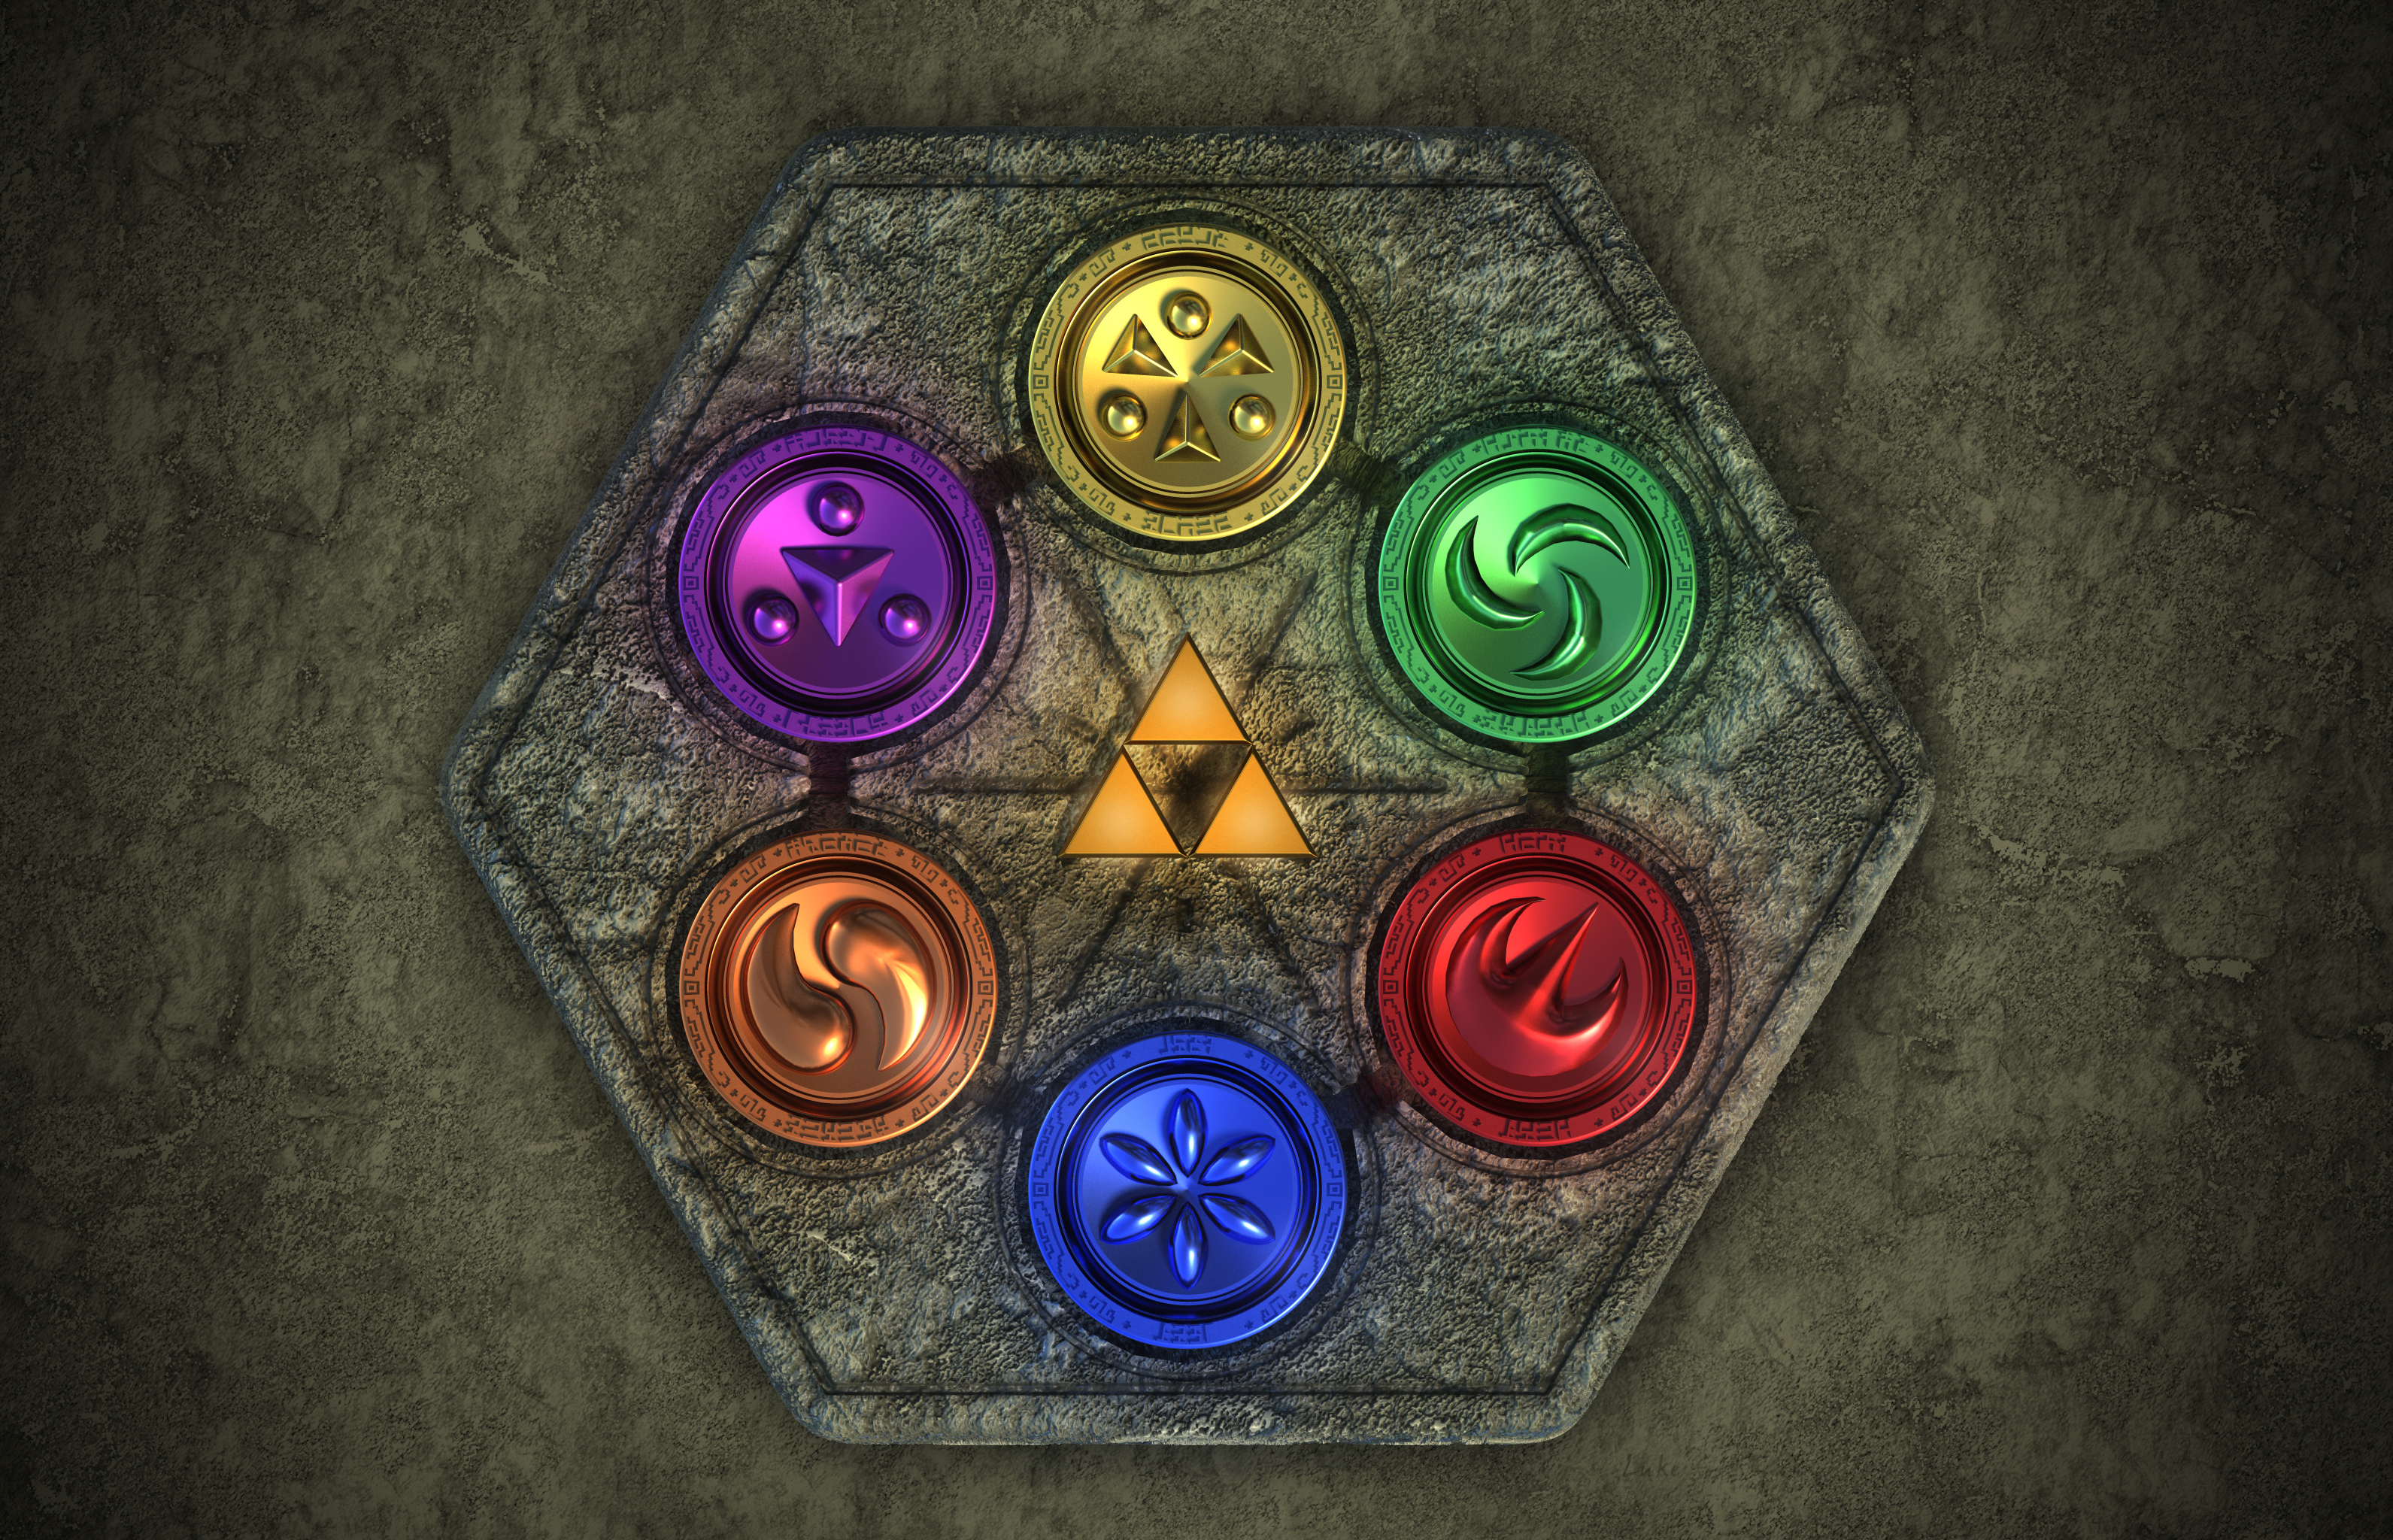 Medallions of the Sages